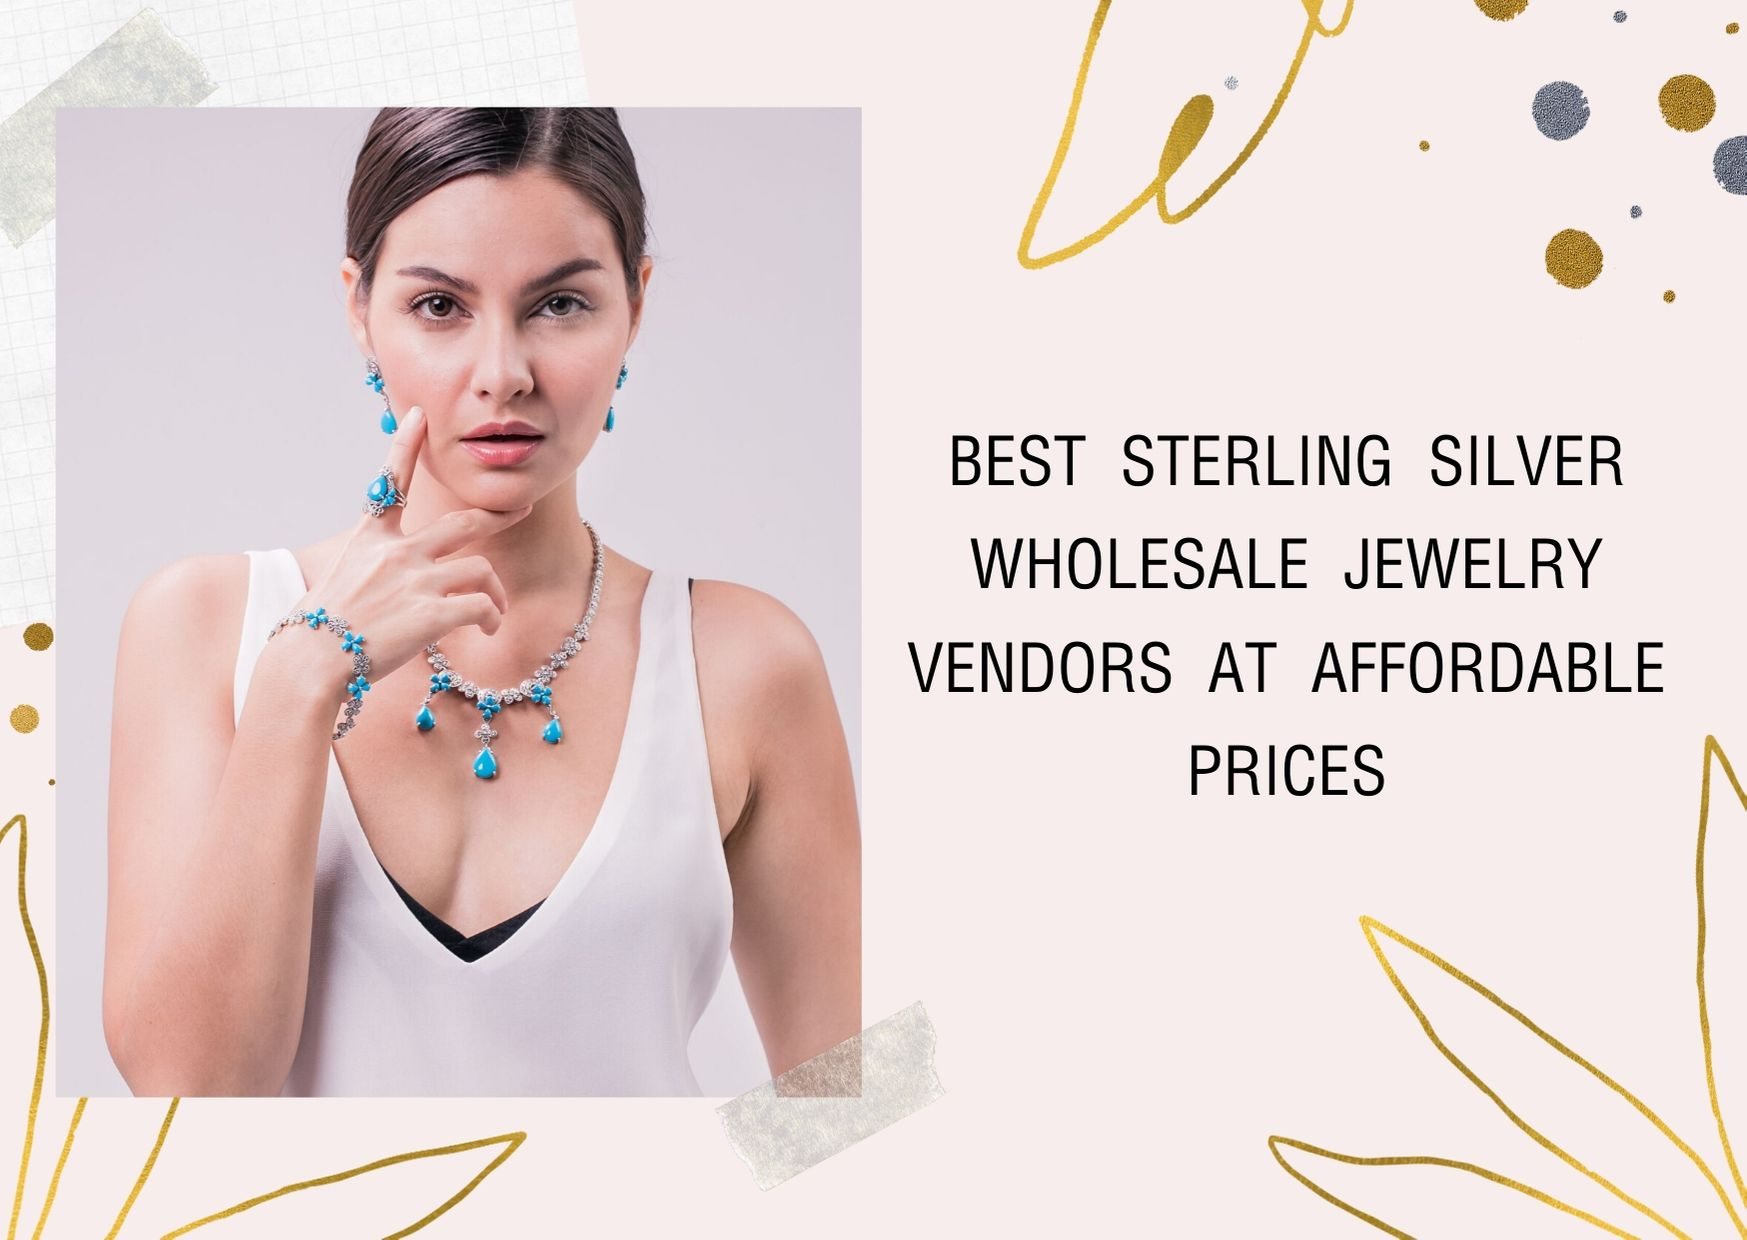 Best Sterling Silver wholesale jewelry vendors at Affordable Prices